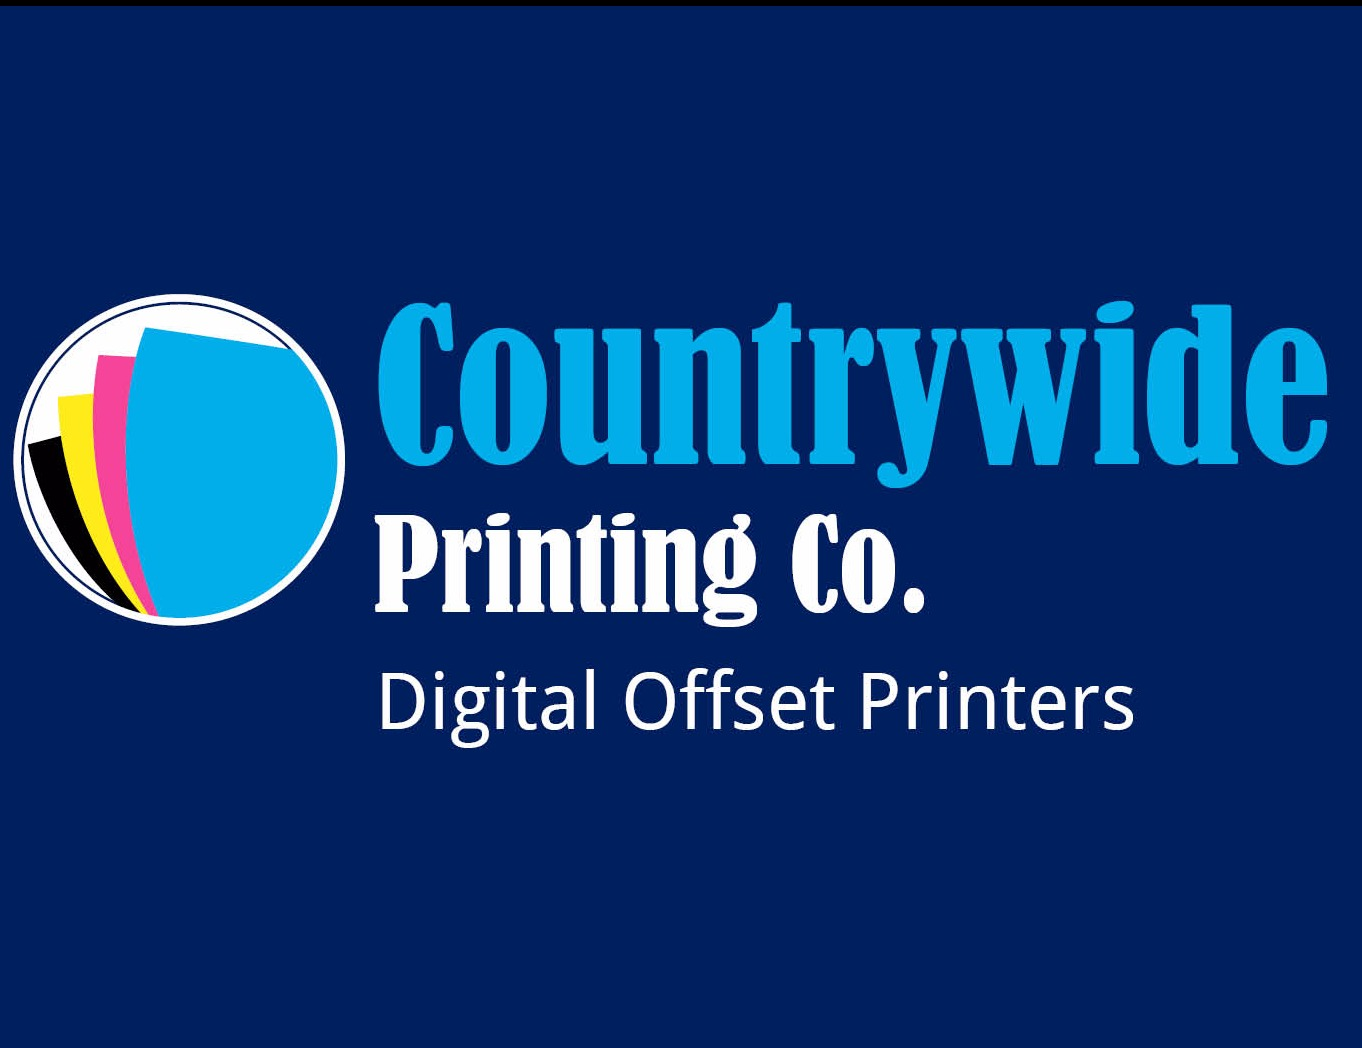 Countrywide Printing Co. Ltd